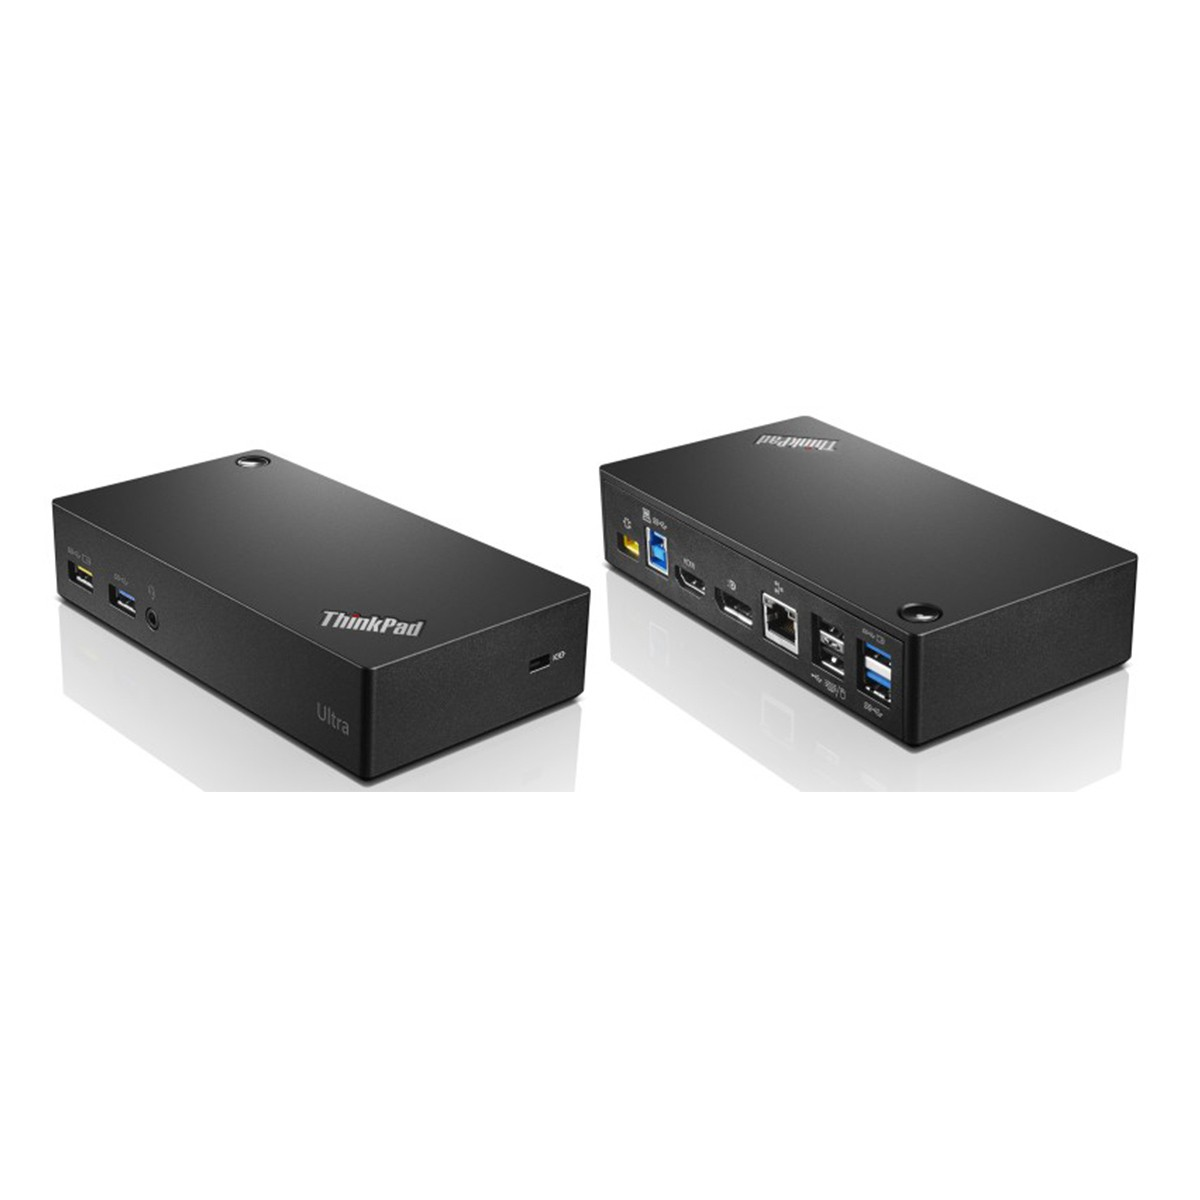 (EOL) Lenovo™ ThinkPad® USB 3.0 Ultra Dock Demoartikel